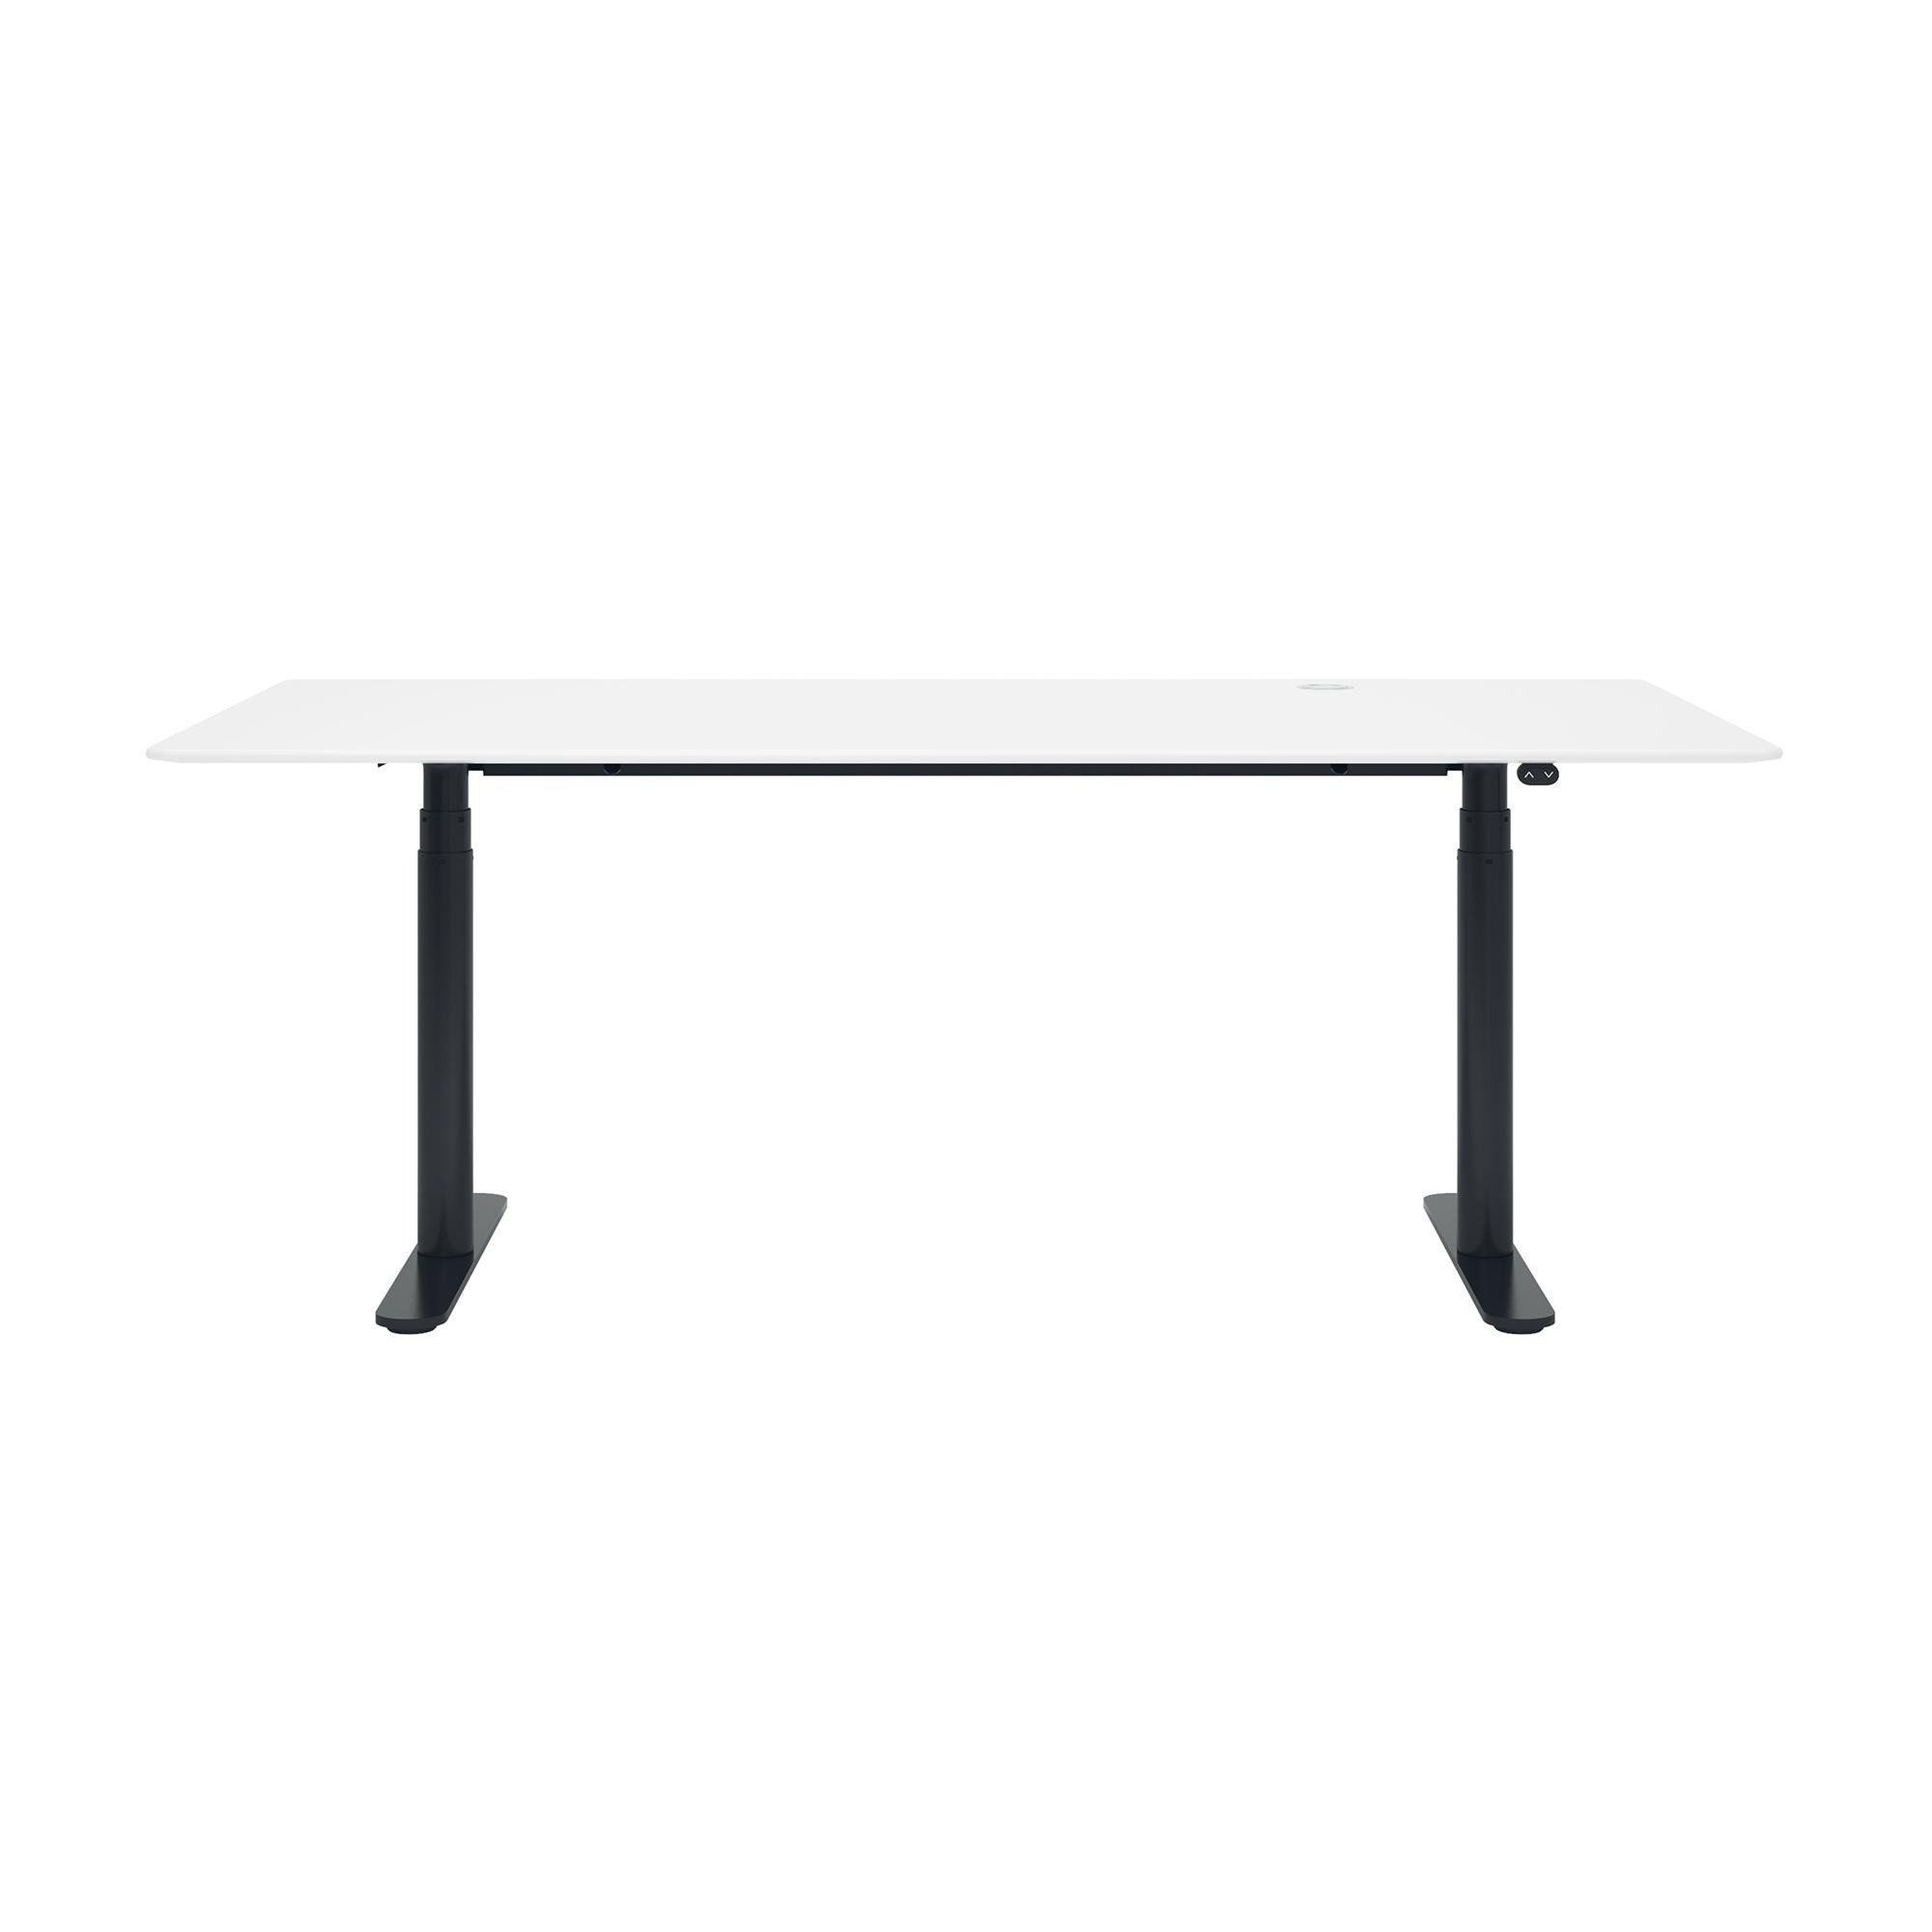 Montana HiLow Office Table Xcm AmbienteDirect - Black round office table